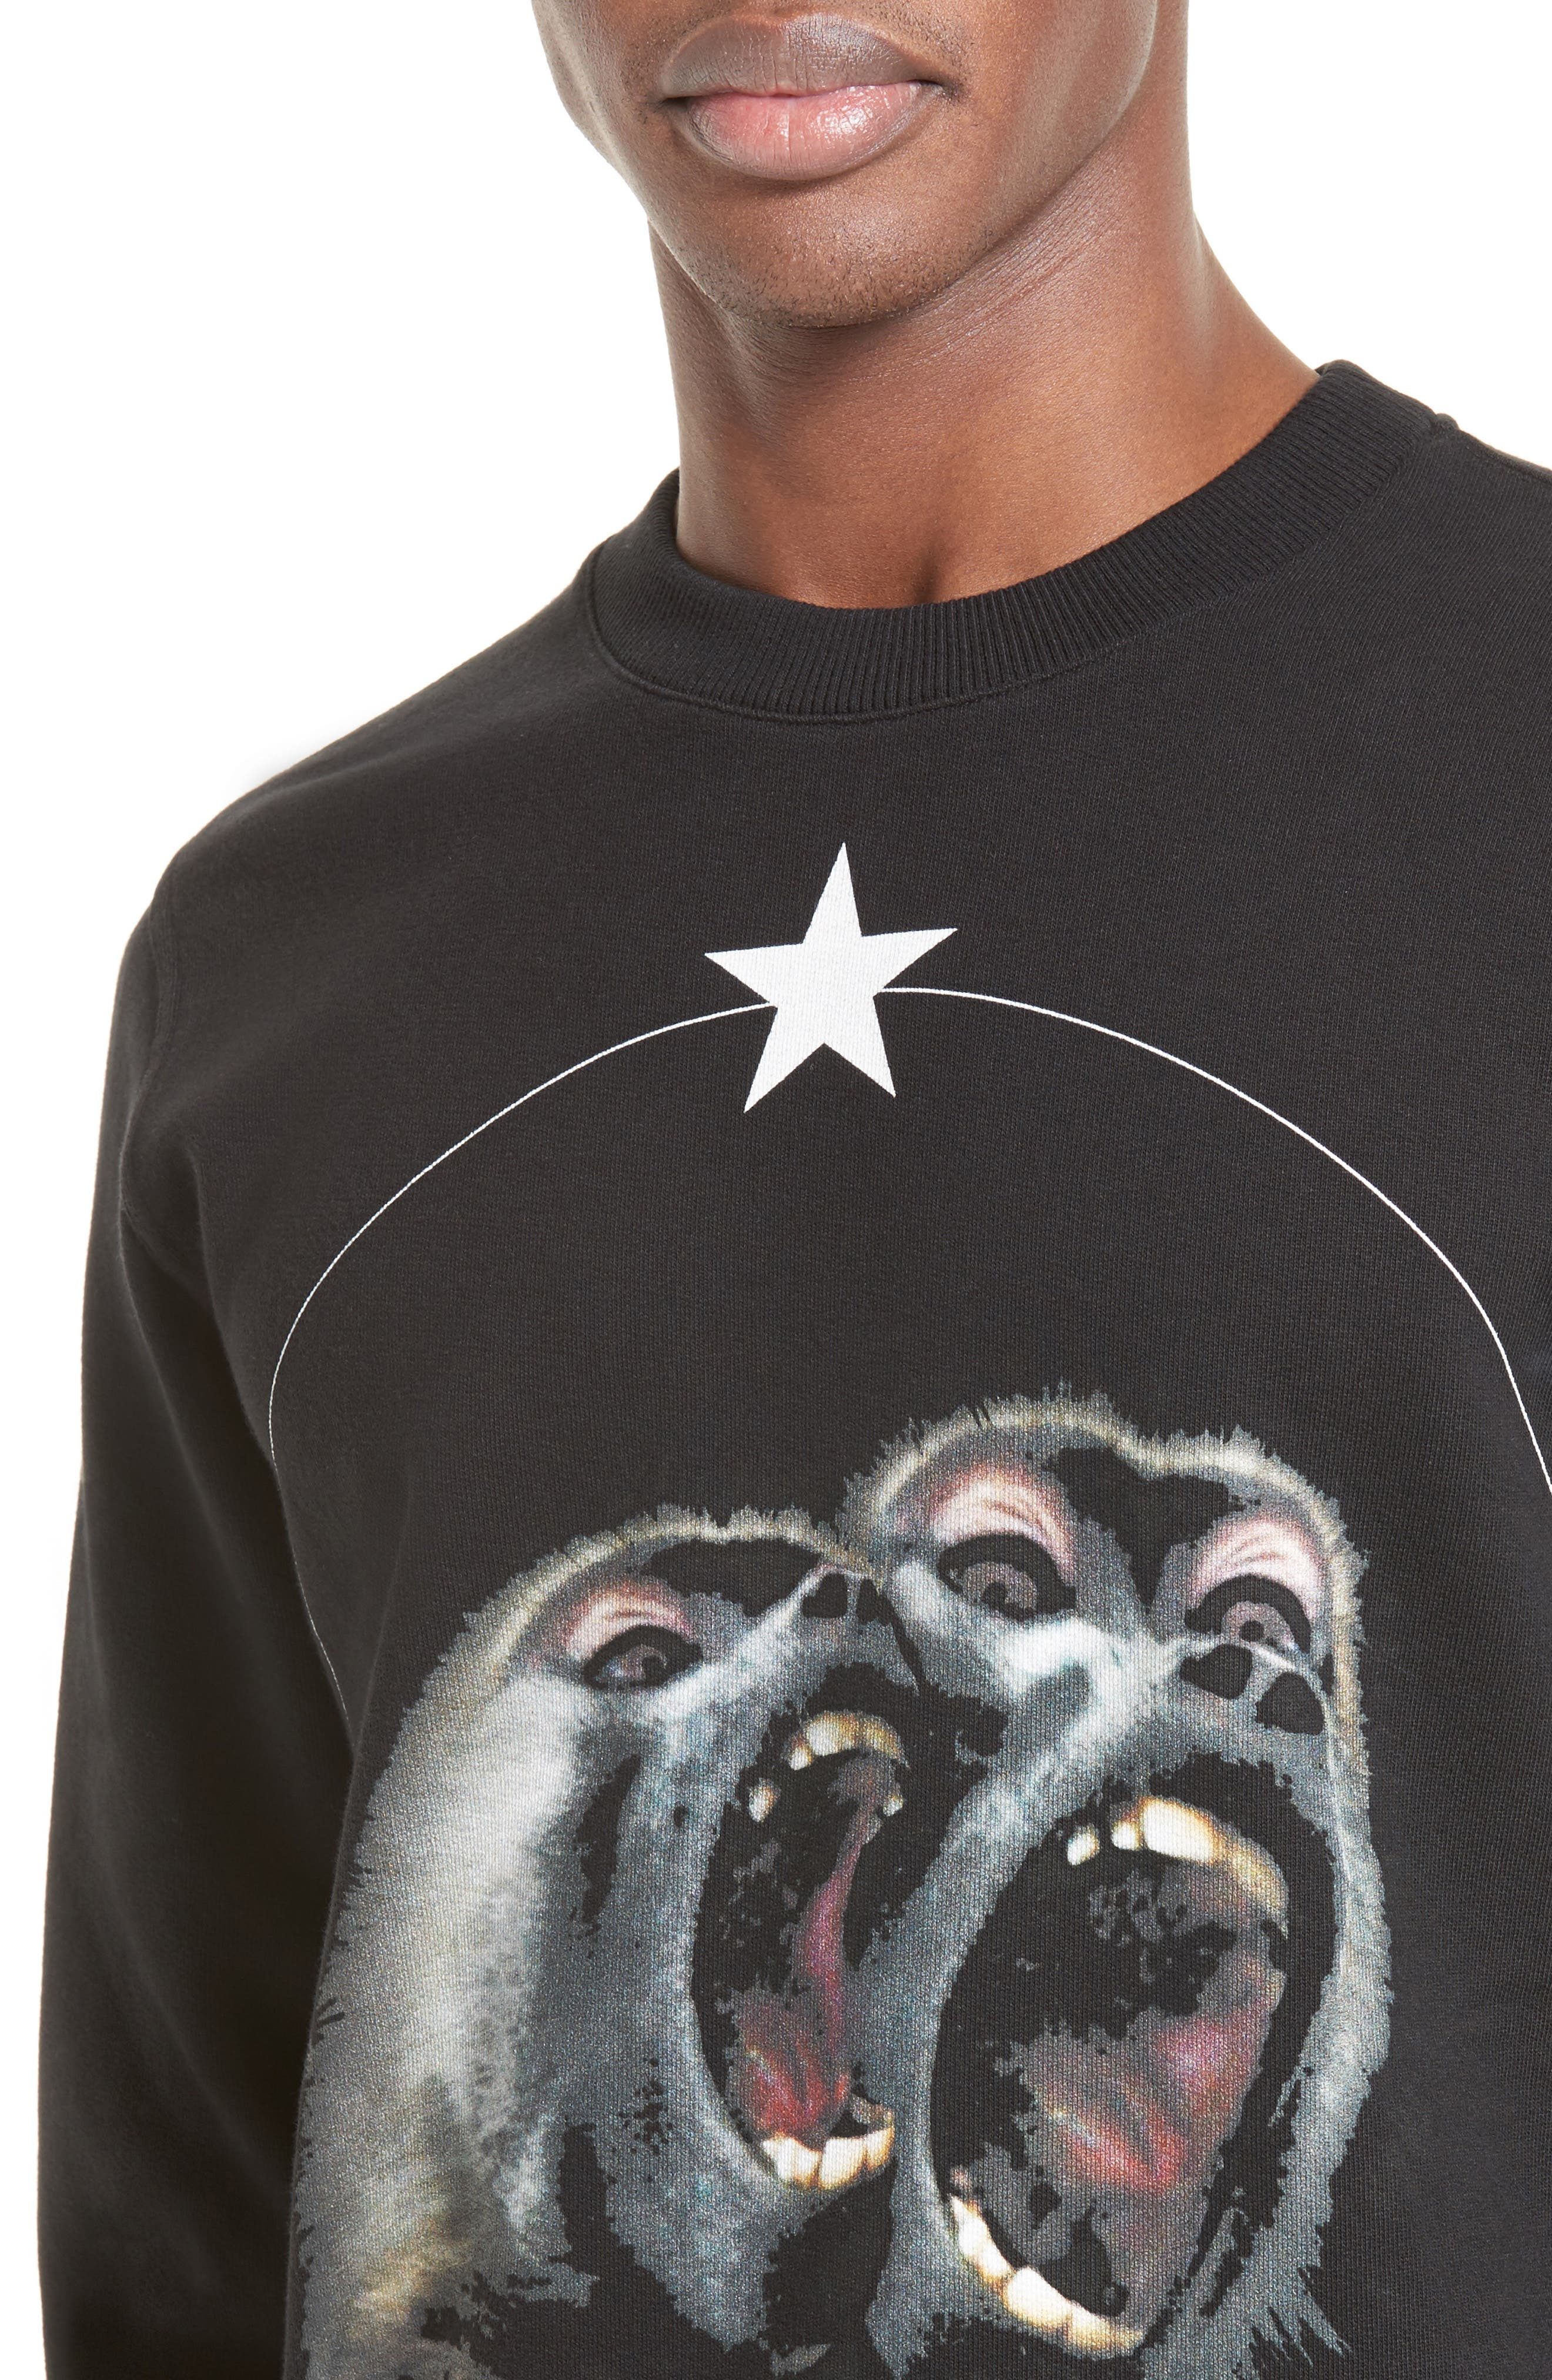 Monkey Brothers Graphic Sweatshirt,                             Alternate thumbnail 4, color,                             Black